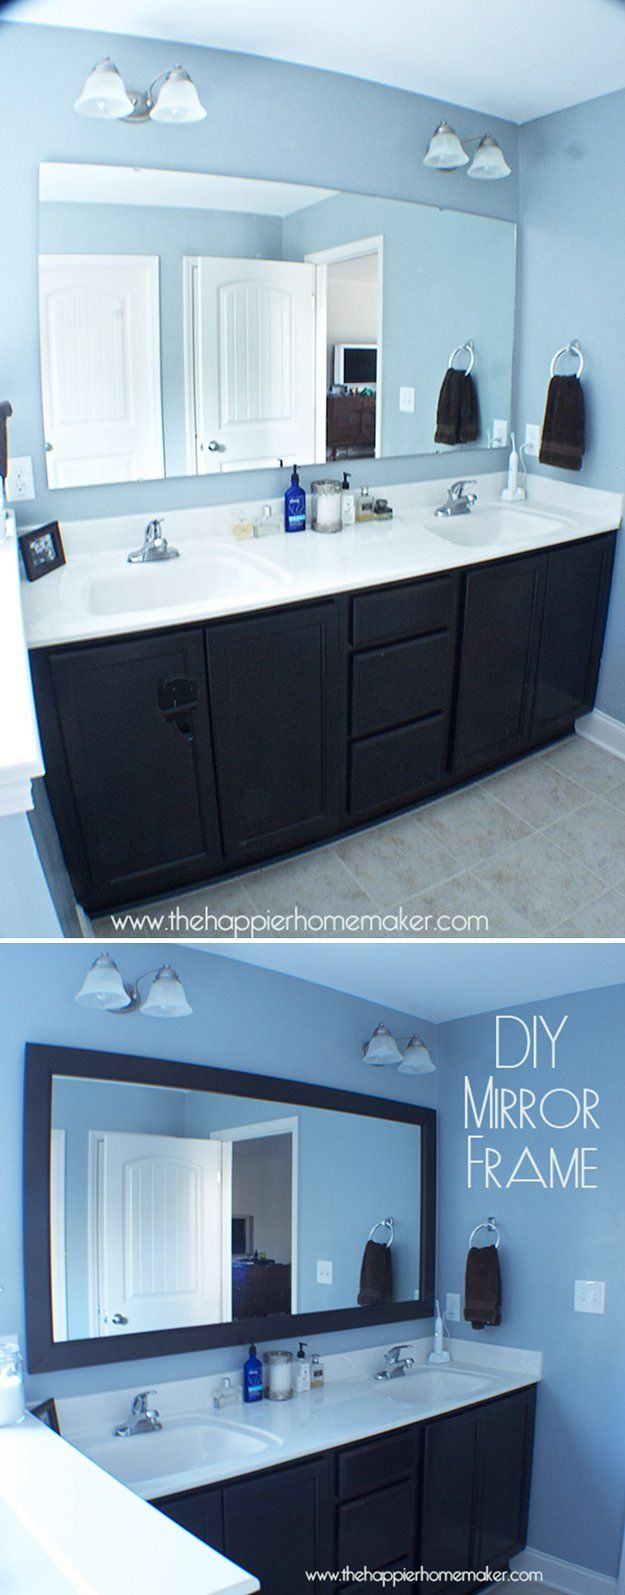 Decorating on a Budget | Budgeting, Bathroom designs and House